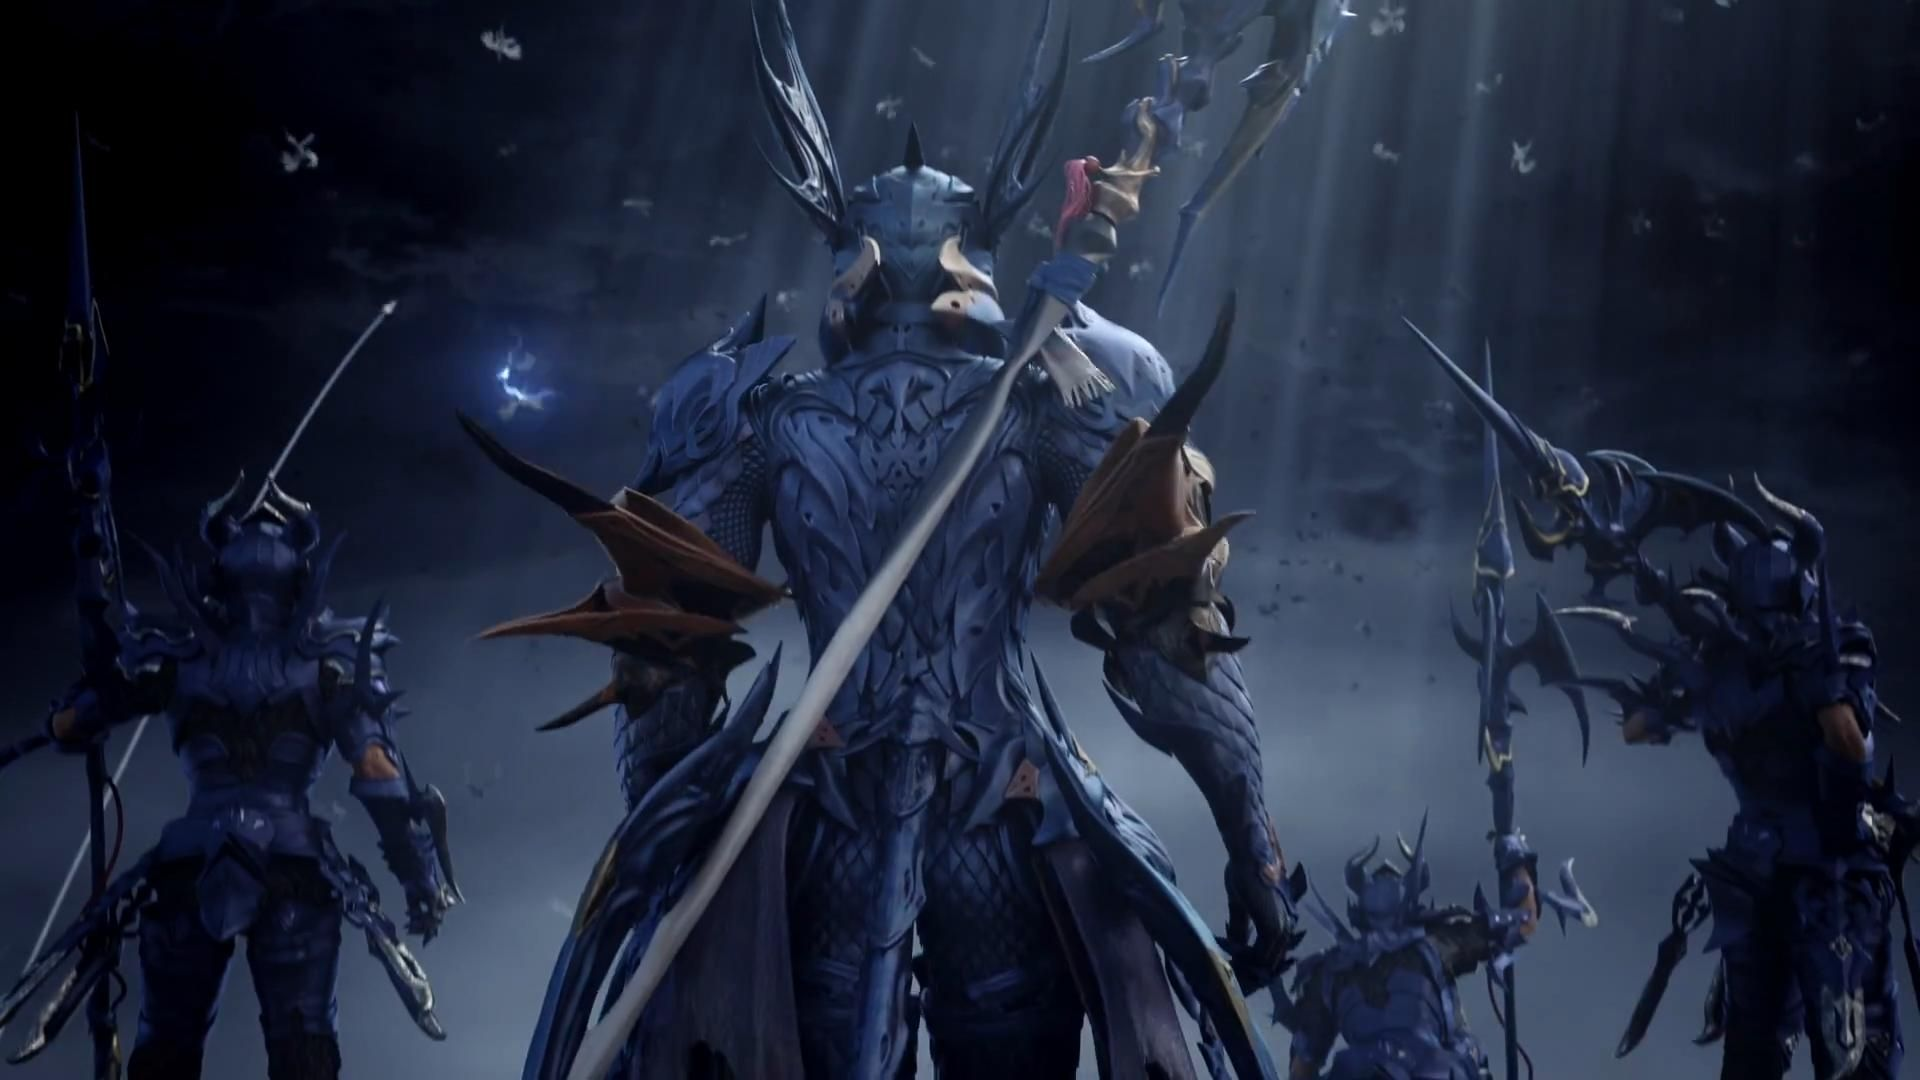 Final Fantasy XIV Life Of The Dragoon